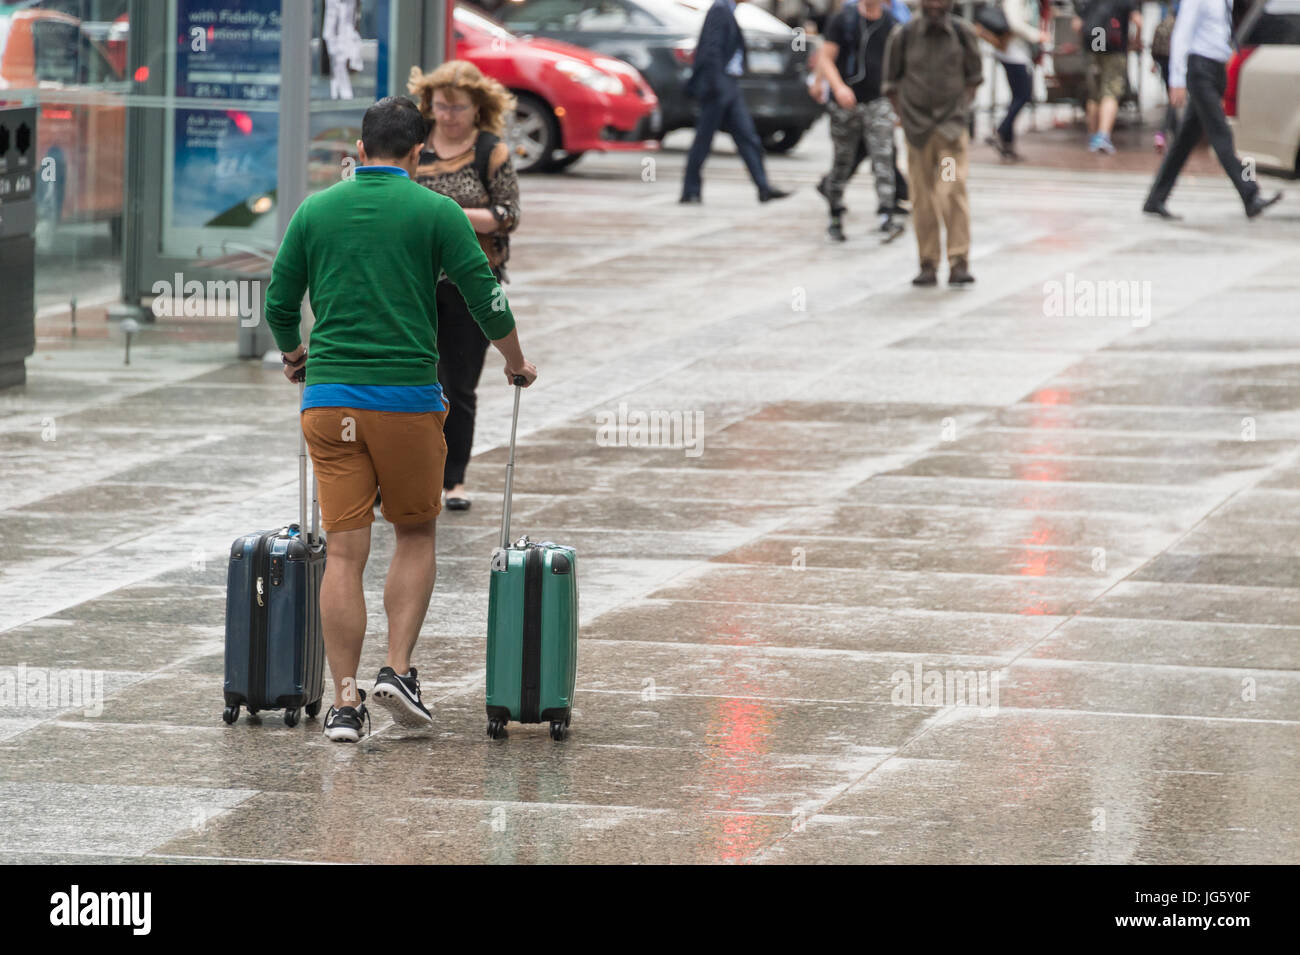 Toronto, Canada - 26 June 2017: Man with spinner luggage walking in Toronto Downtown on a rainy day - Stock Image